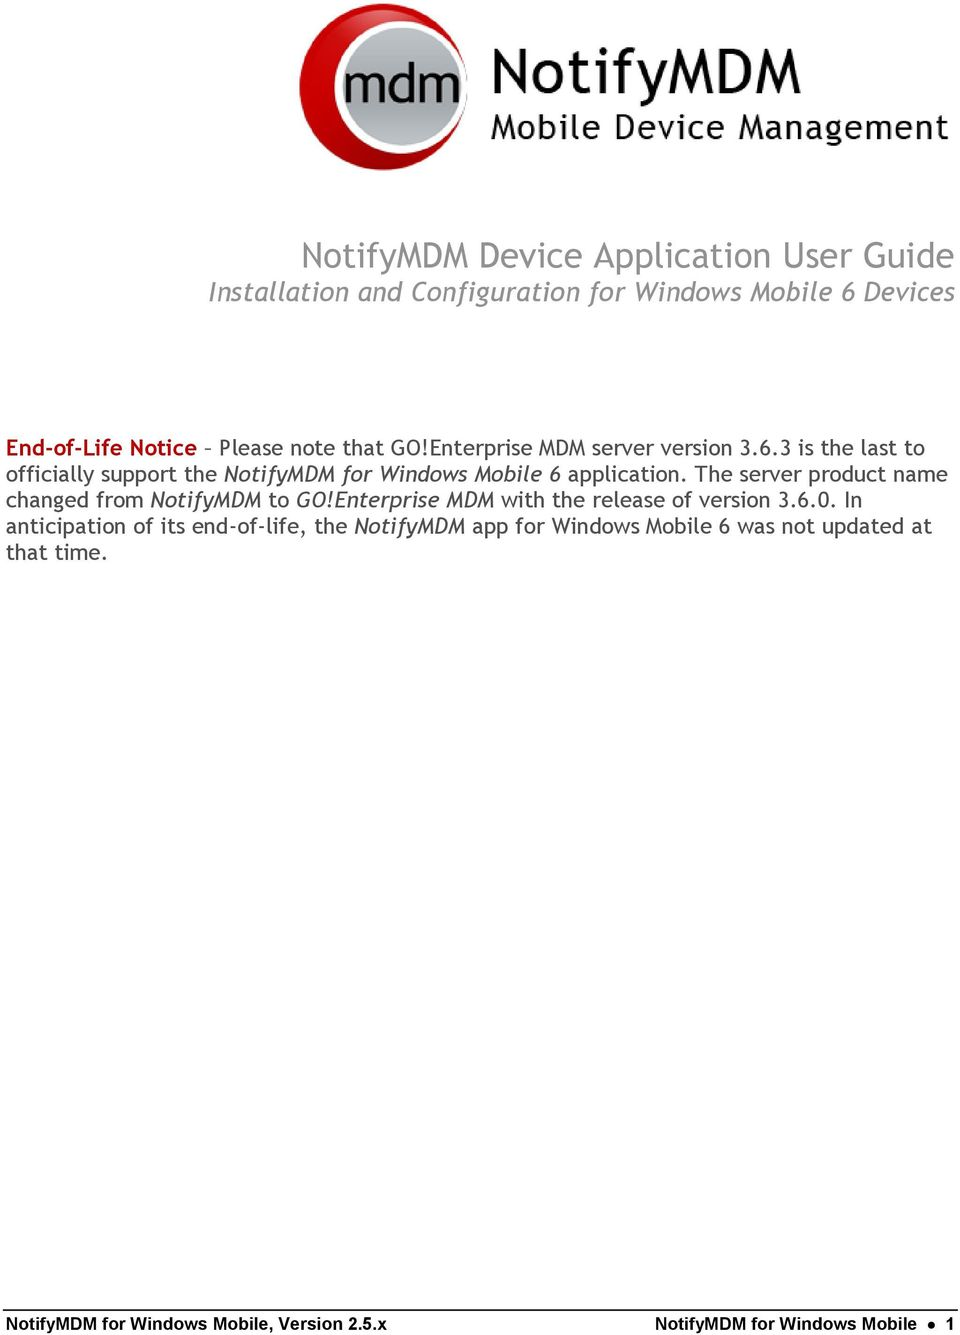 The server product name changed from NotifyMDM to GO!Enterprise MDM with the release of version 3.6.0.